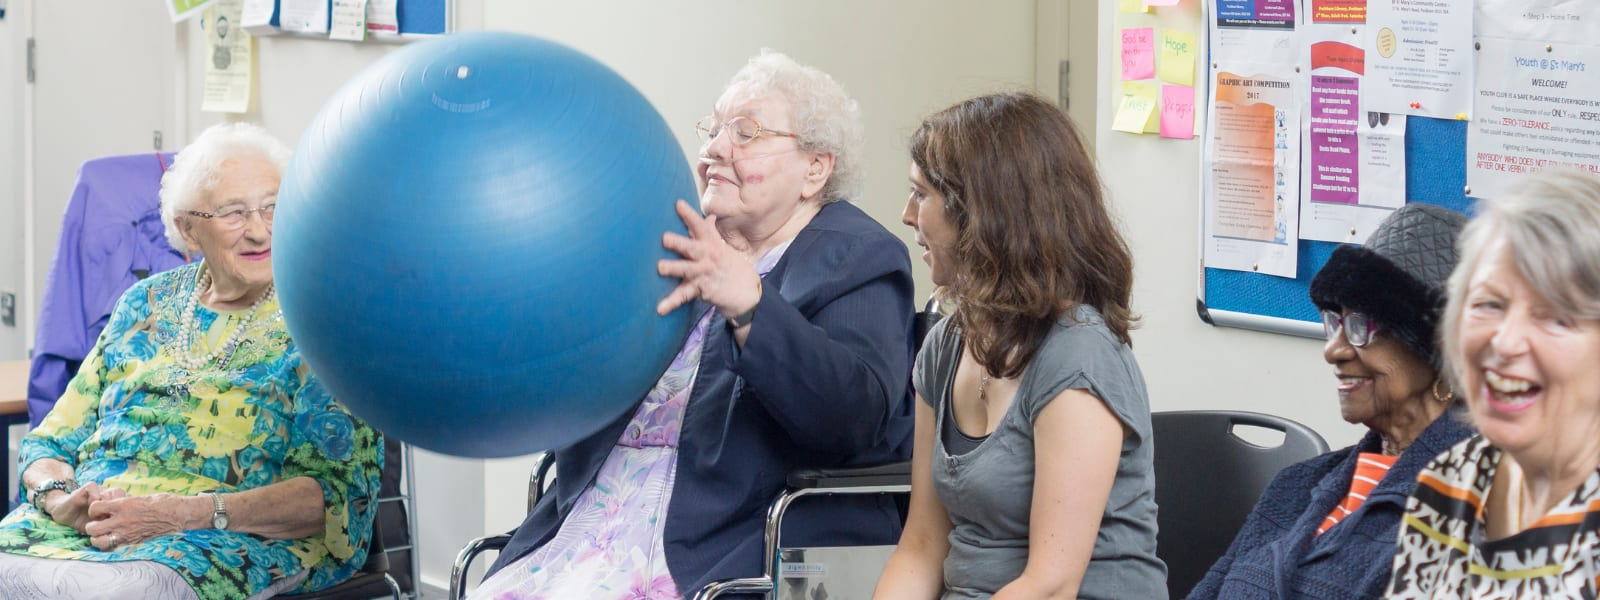 Older lady catching an exercise ball at our Golden Oldies group